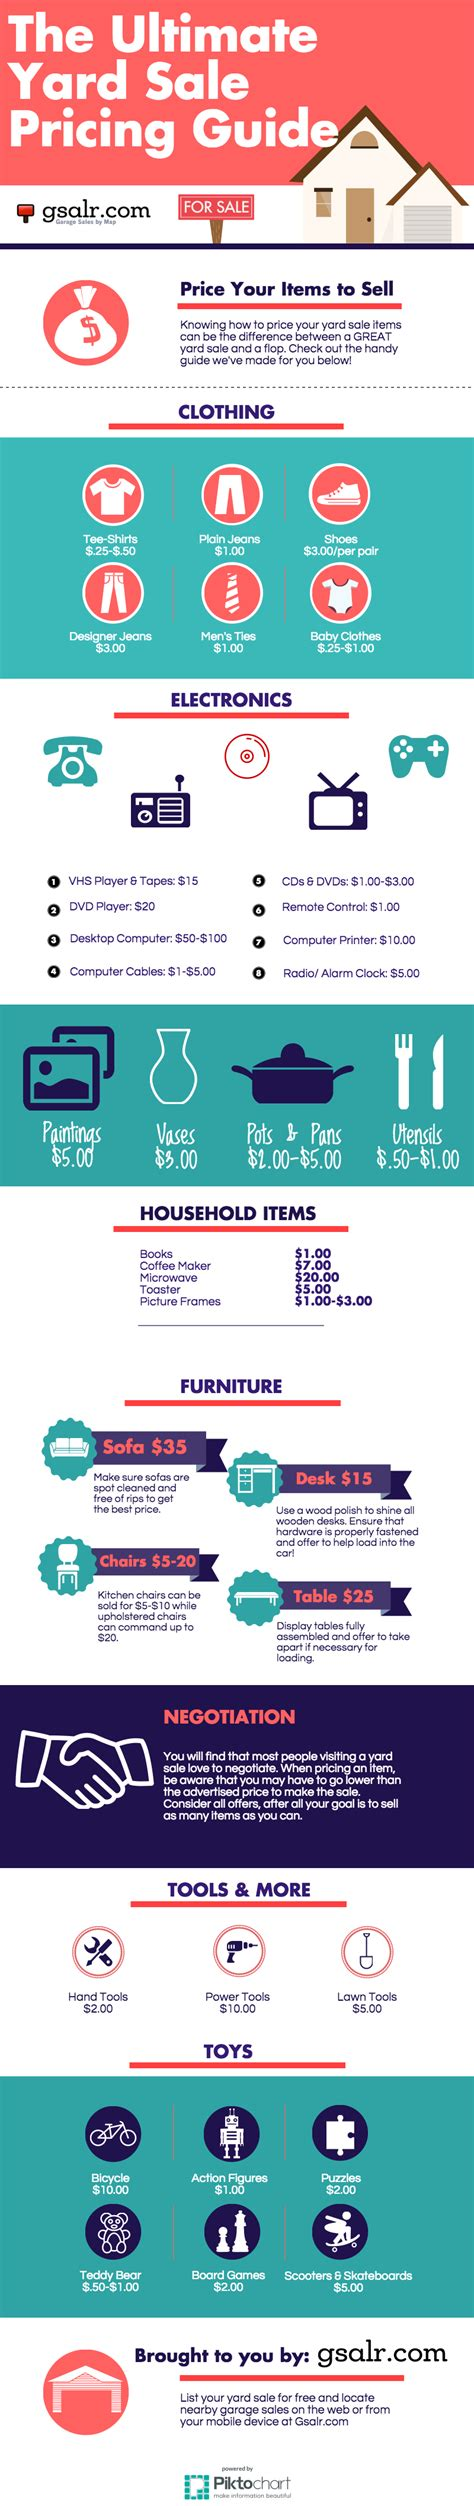 yard sale pricing garage sale pricing guide tips for a successful garage sale post thrifty nw mom